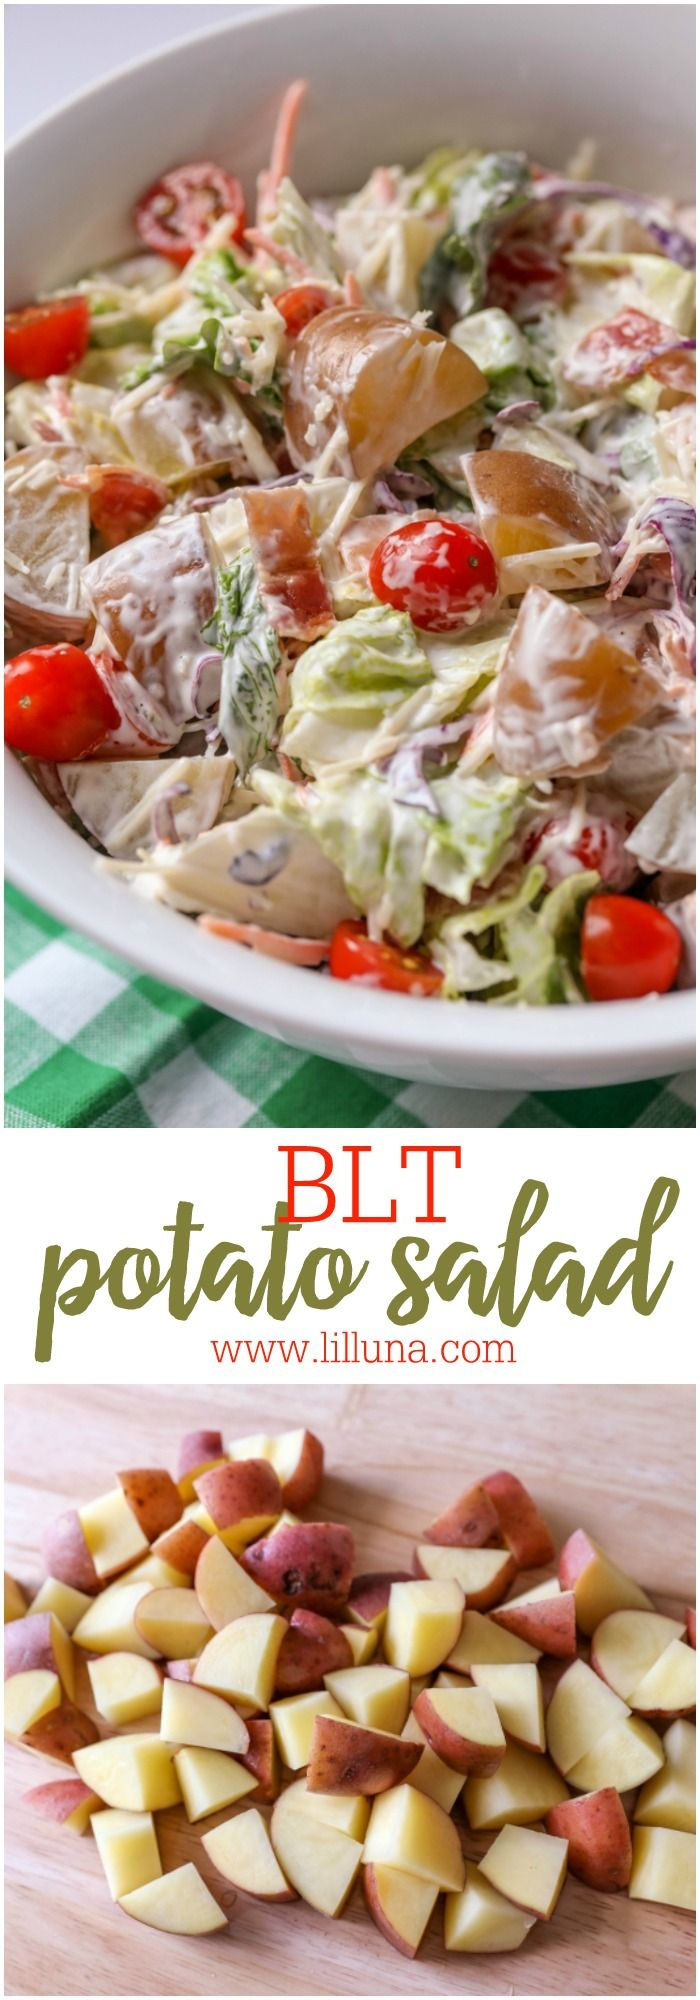 Creamy and delicious BLT Potato Salad filled with salad, potatoes, bacon, lettuce and tomatoes!